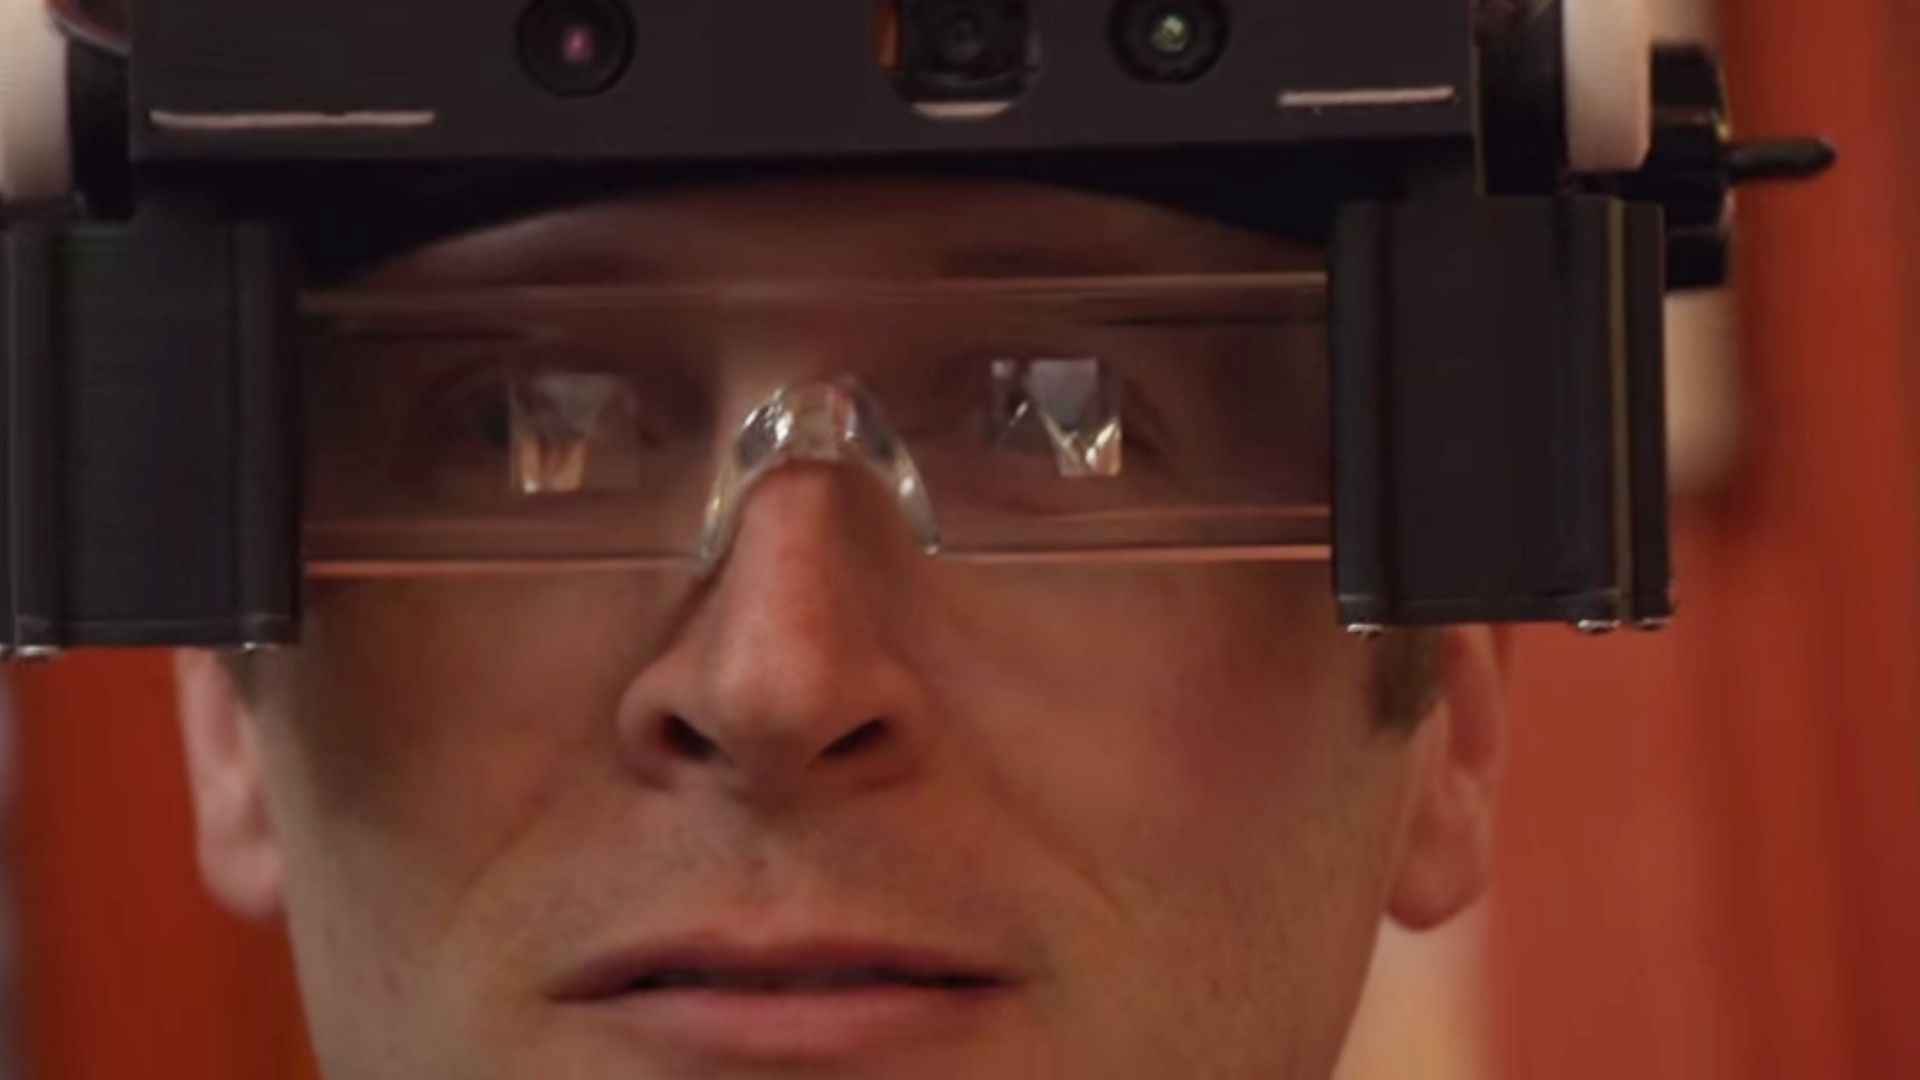 New Wearable Tech Could Help Blind People To See Wearable Tech Amazing Technology Wearable Technology